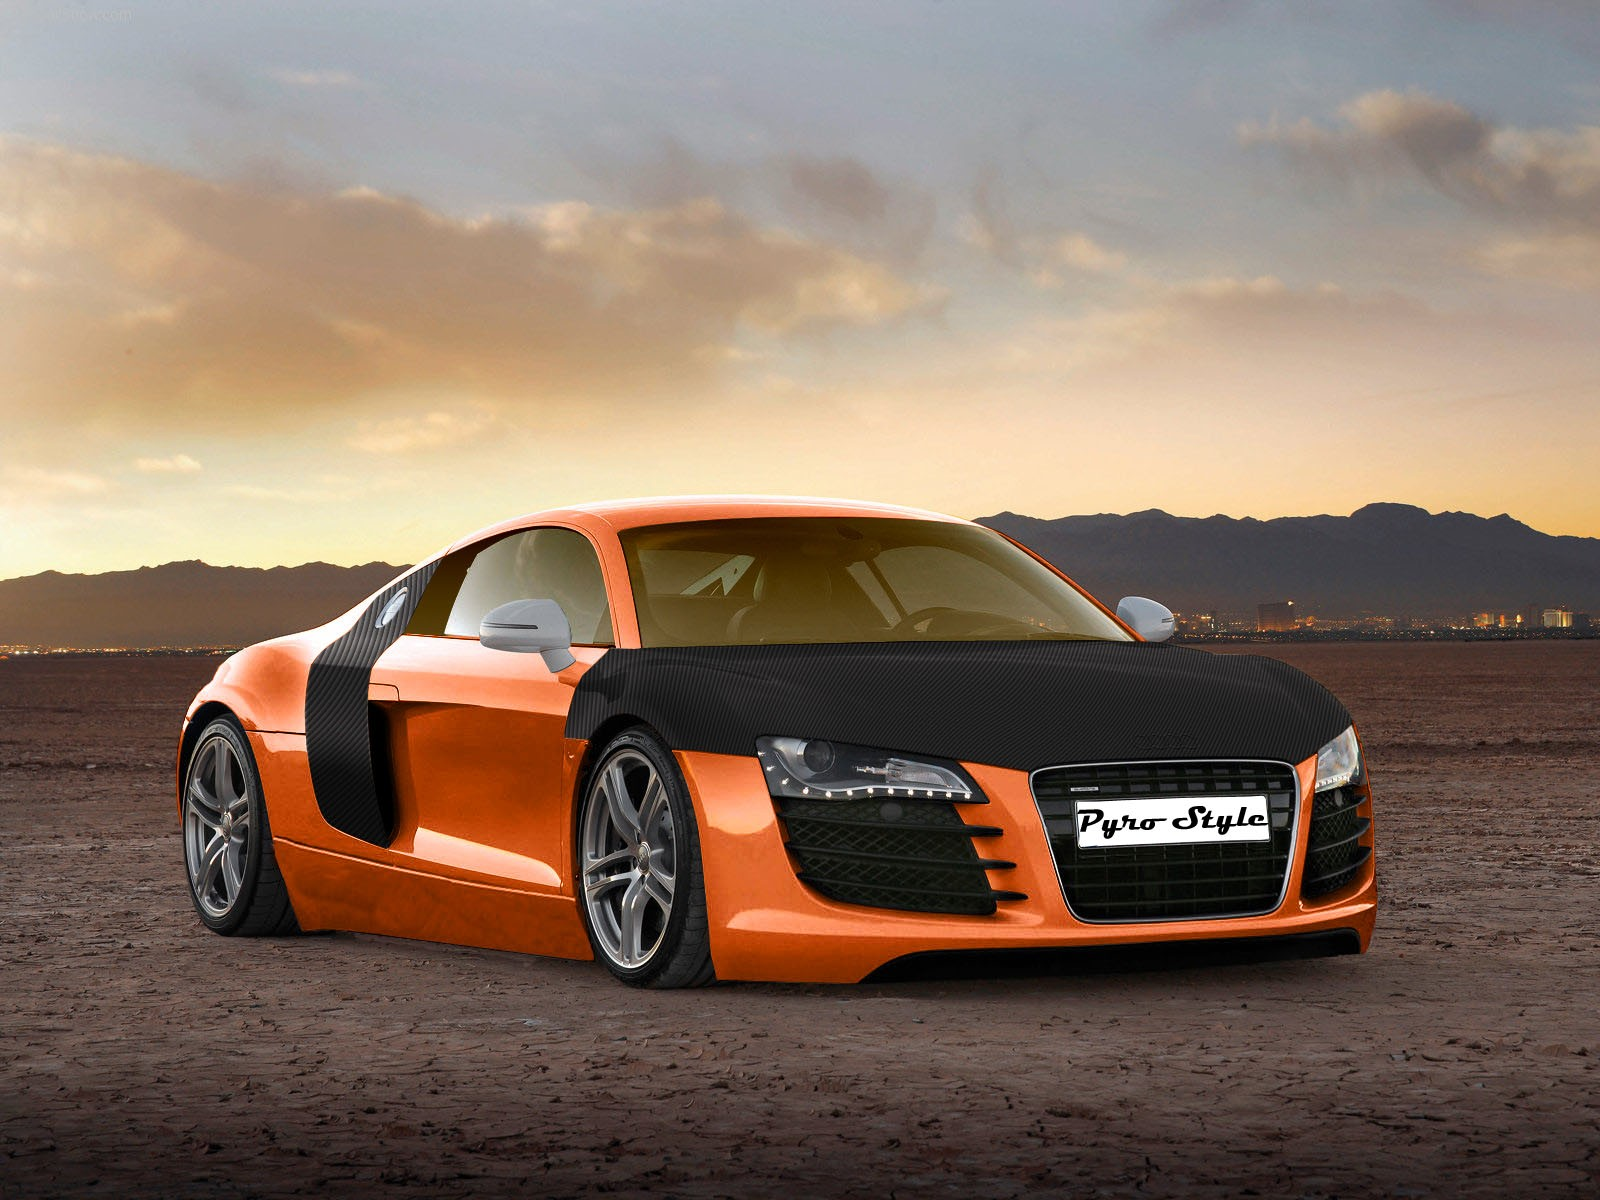 Audi Wallpaper Widescreen Wallpaper CarWallpapersForDesktoporg - Audi car background